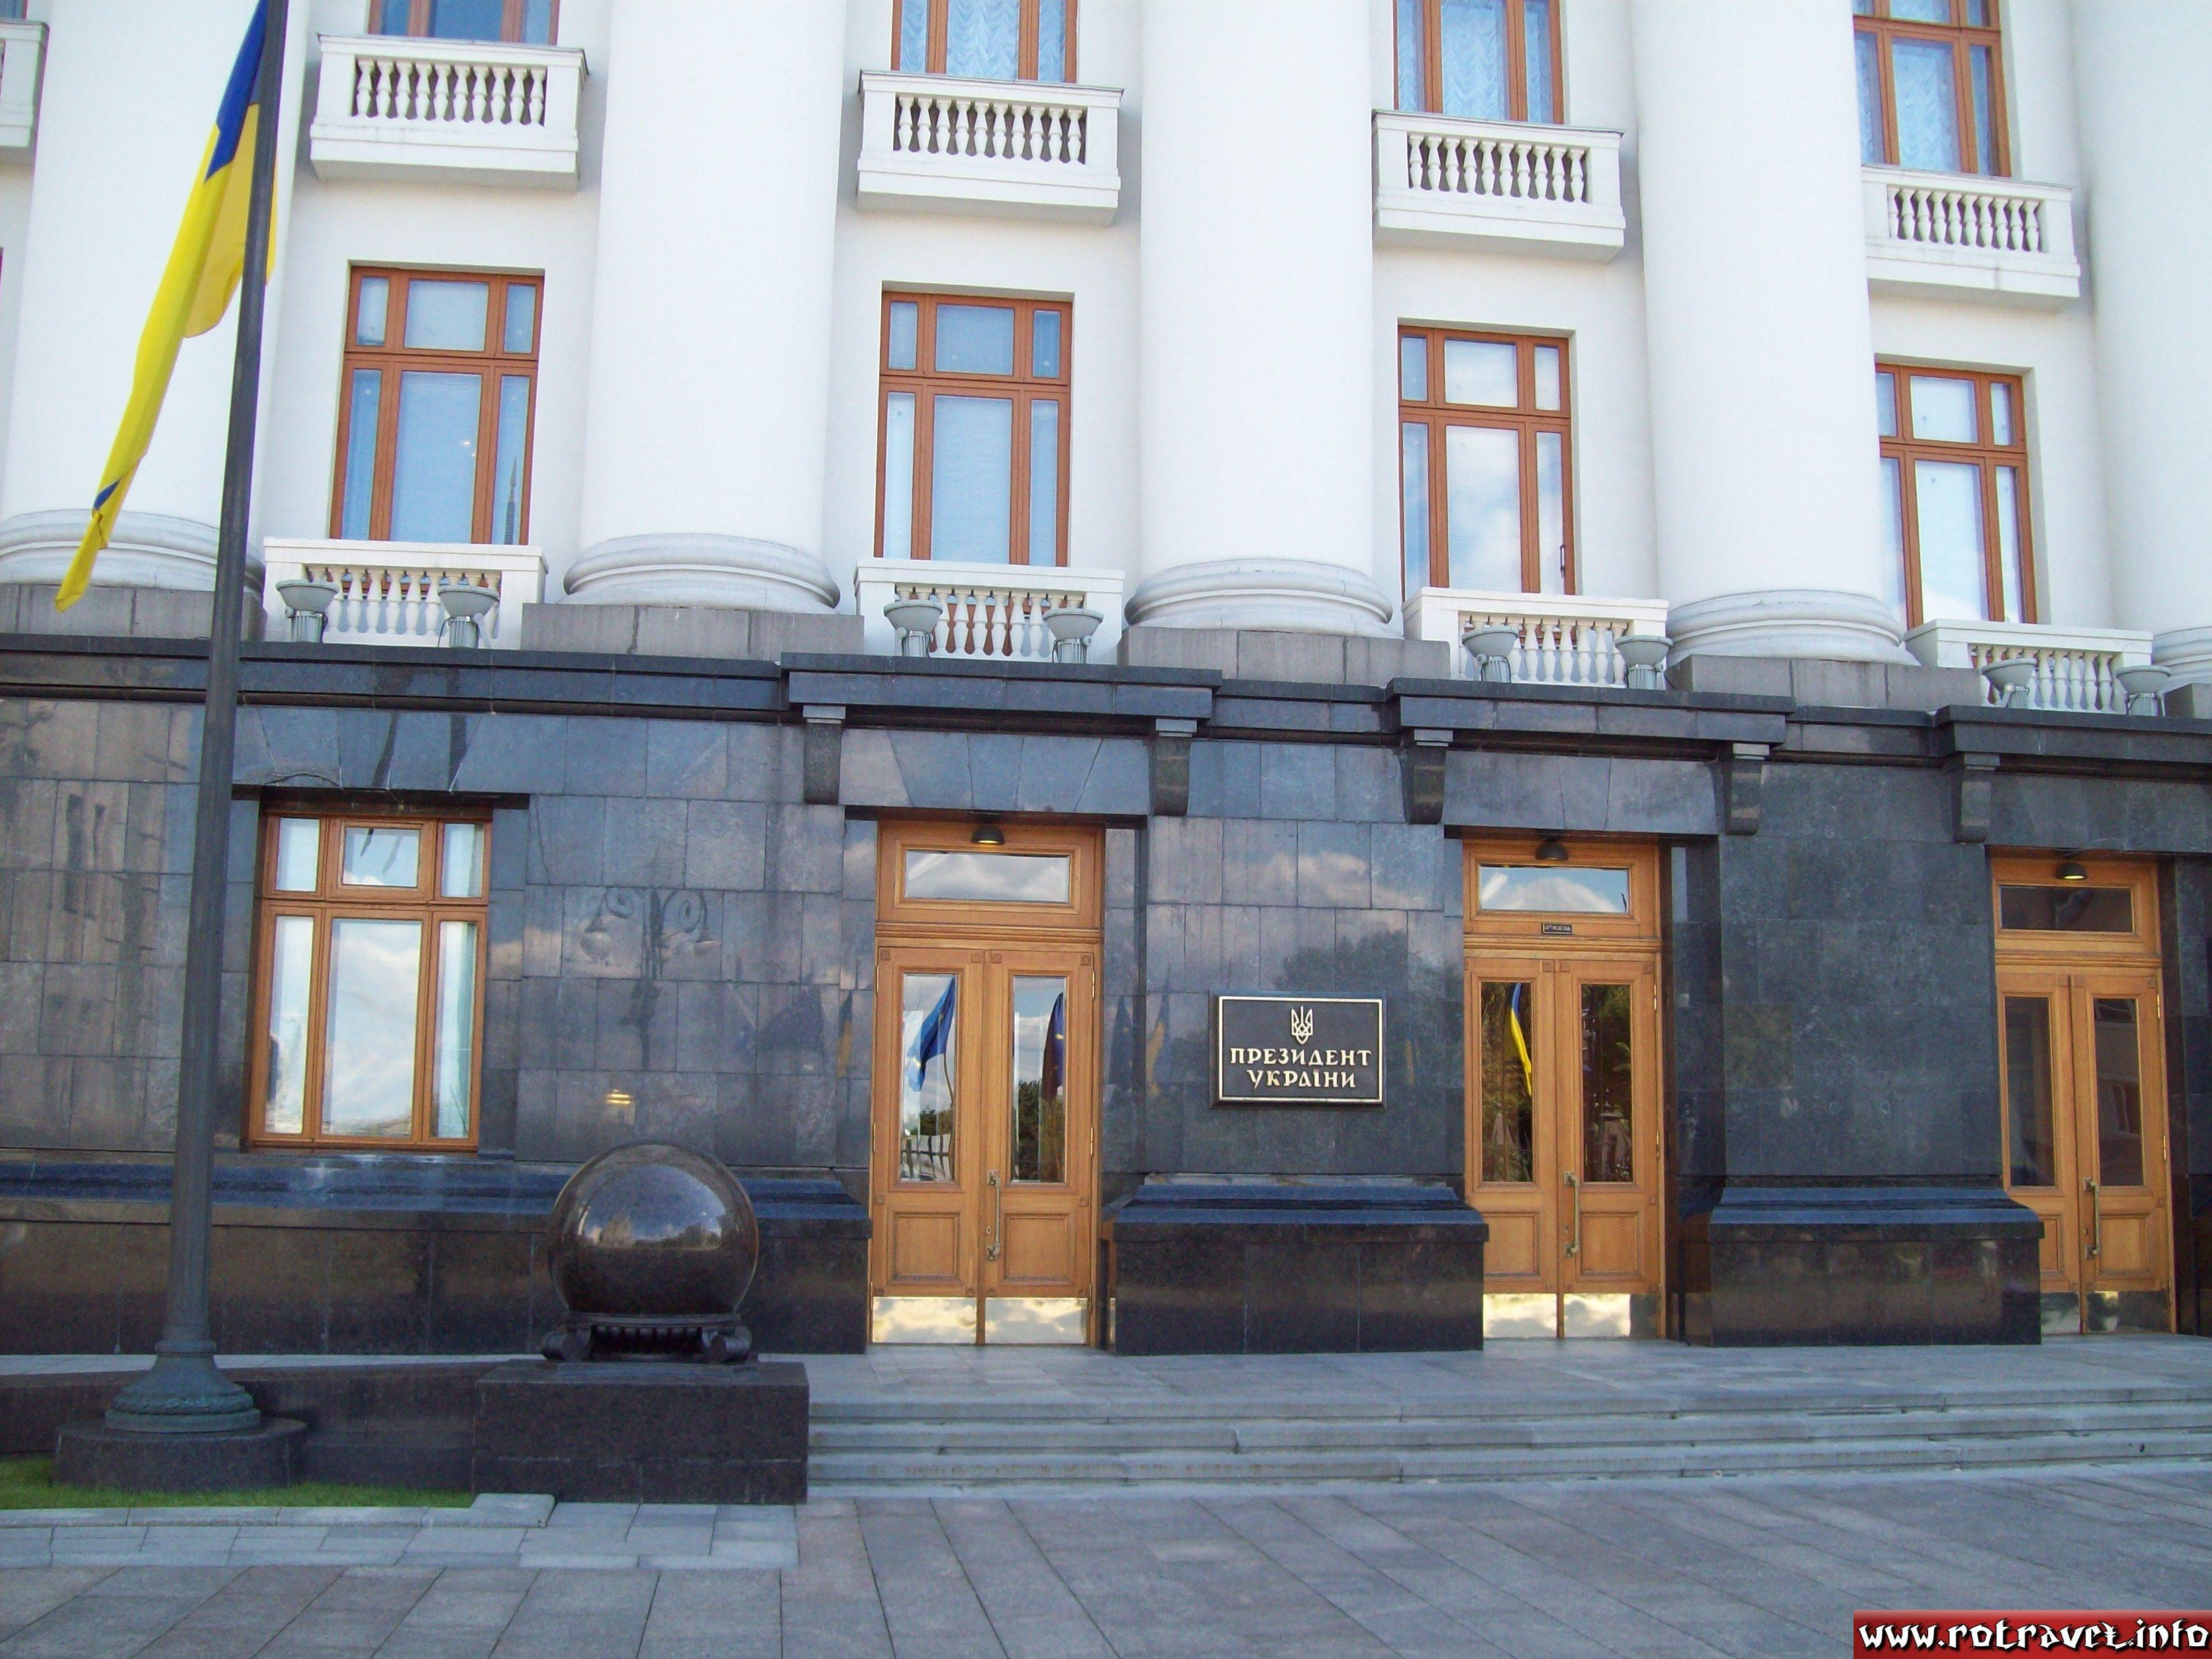 The building of the Presidential Secretariat is near to the House with Chimaeras